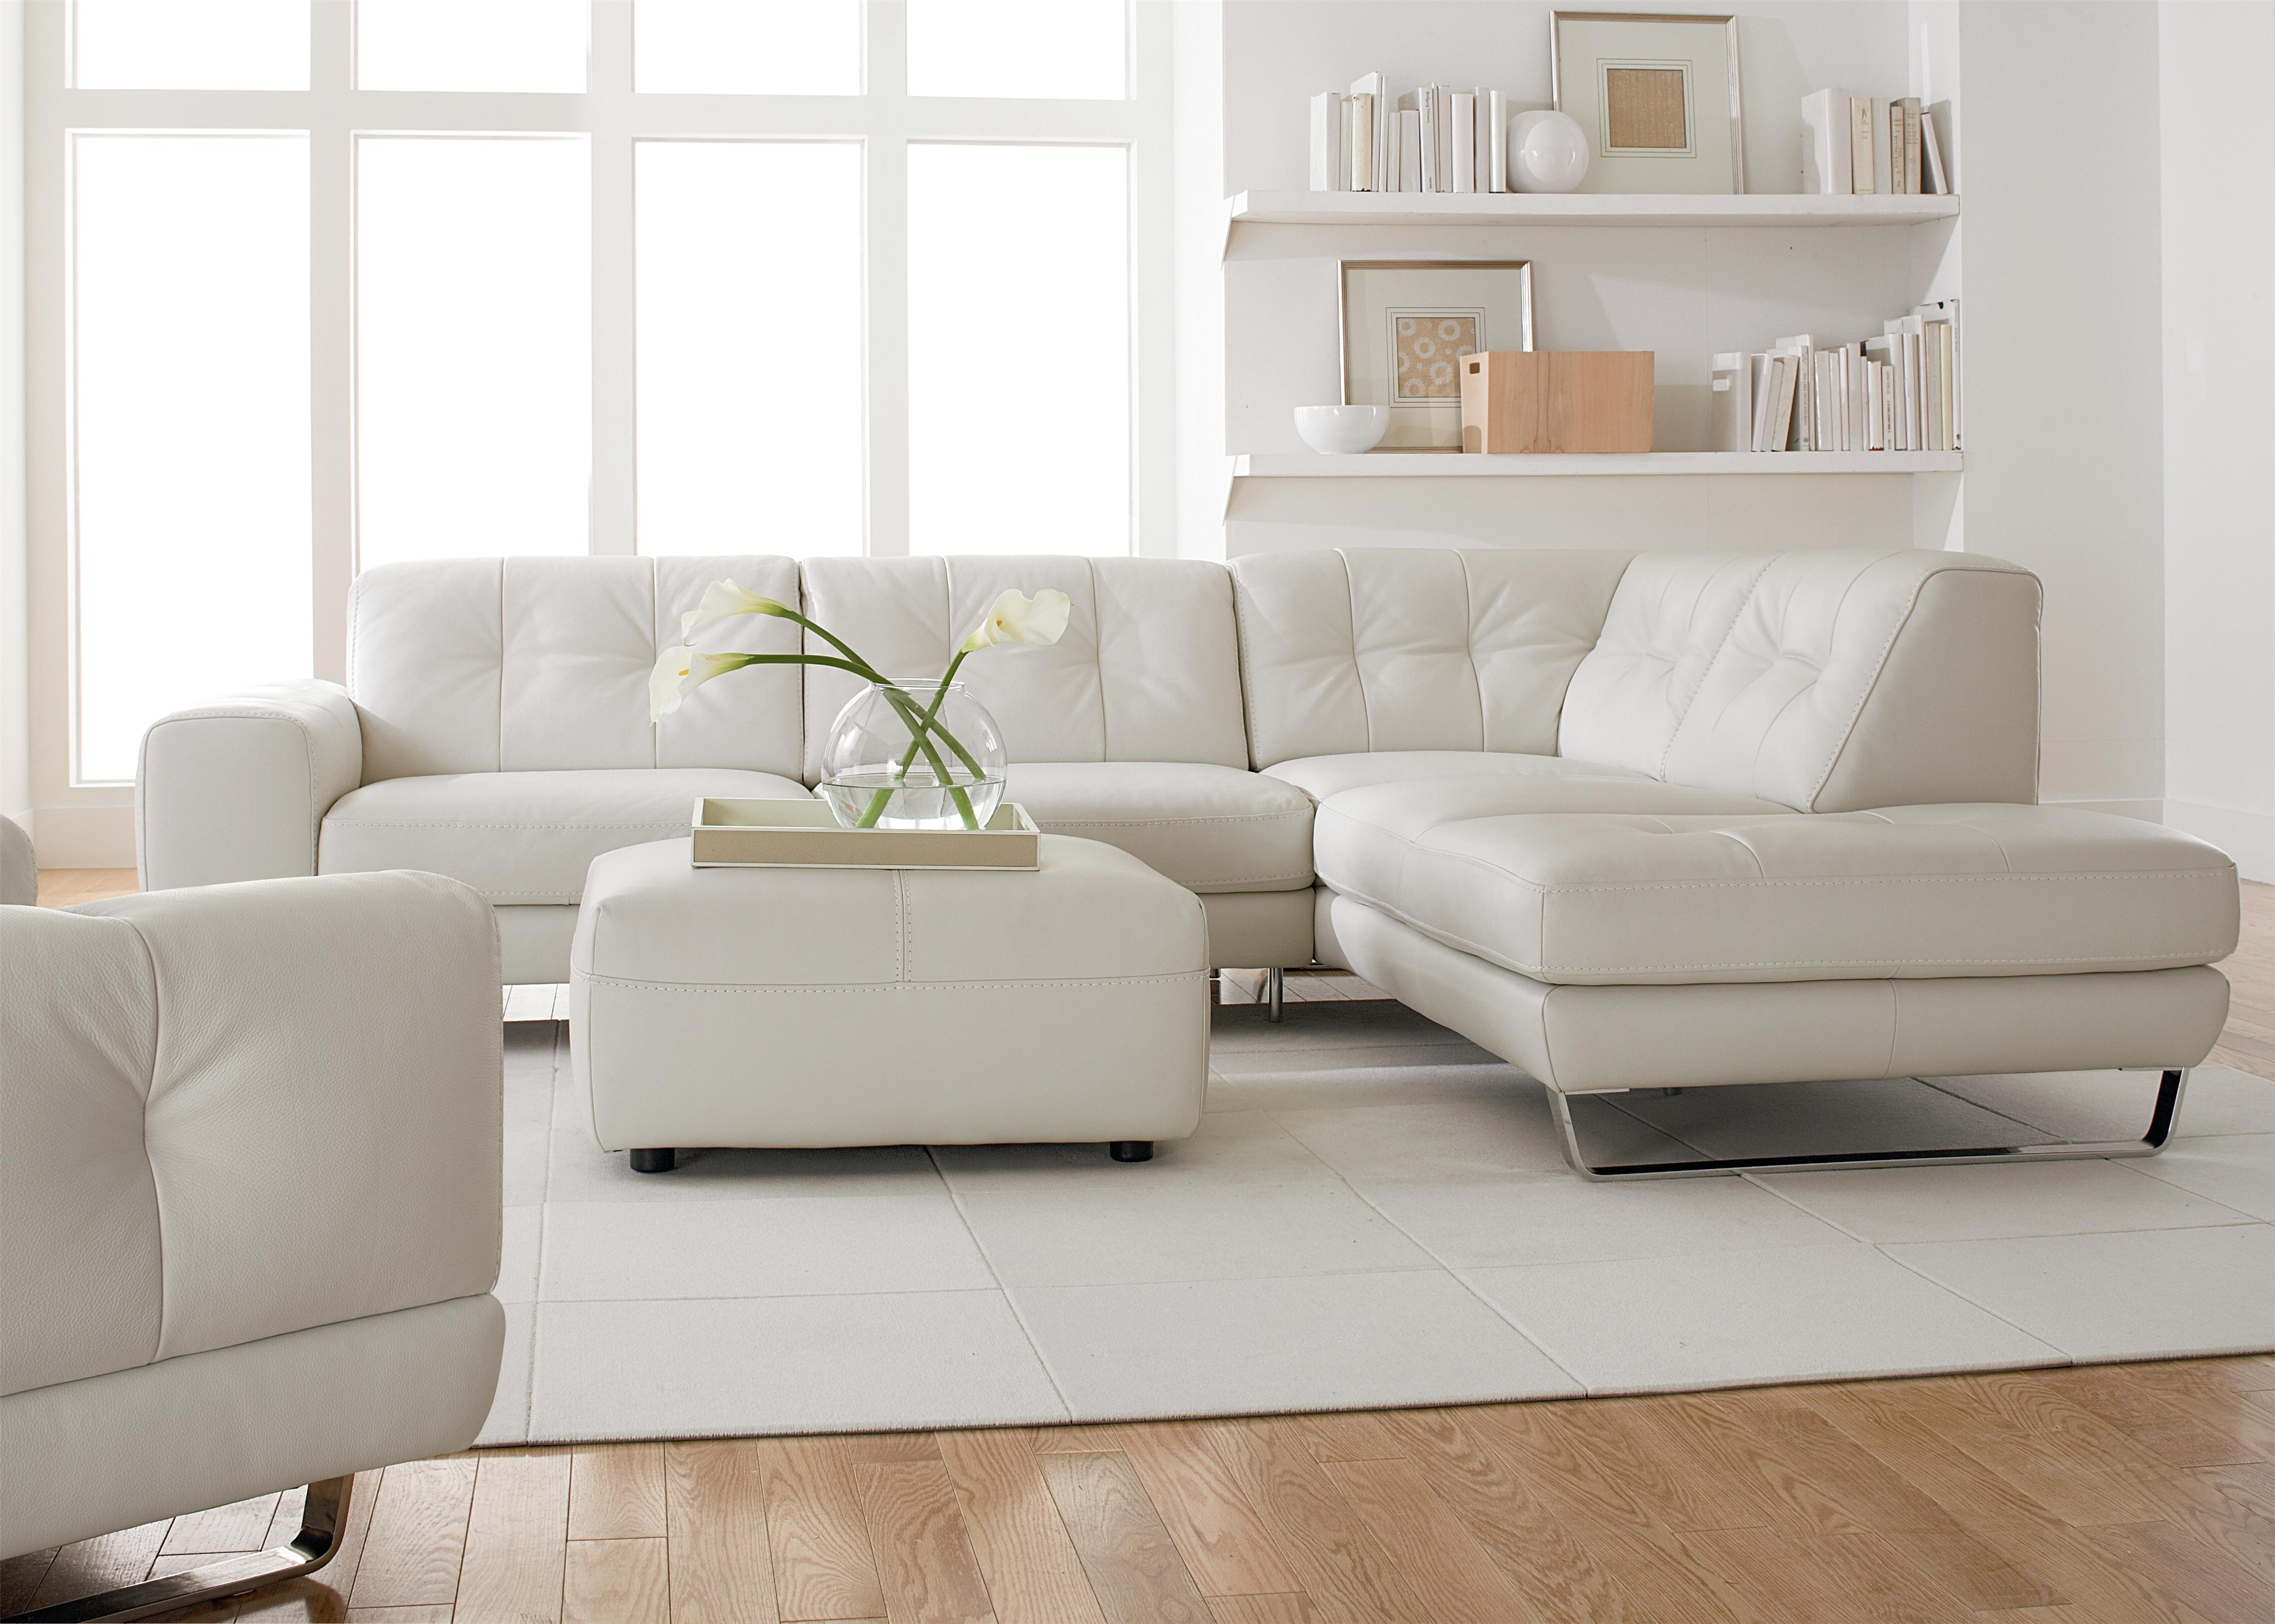 Matter Brothers Outlet Store Kanes Furniture In Orlando Baer Pertaining To Kanes Sectional Sofas (View 8 of 10)